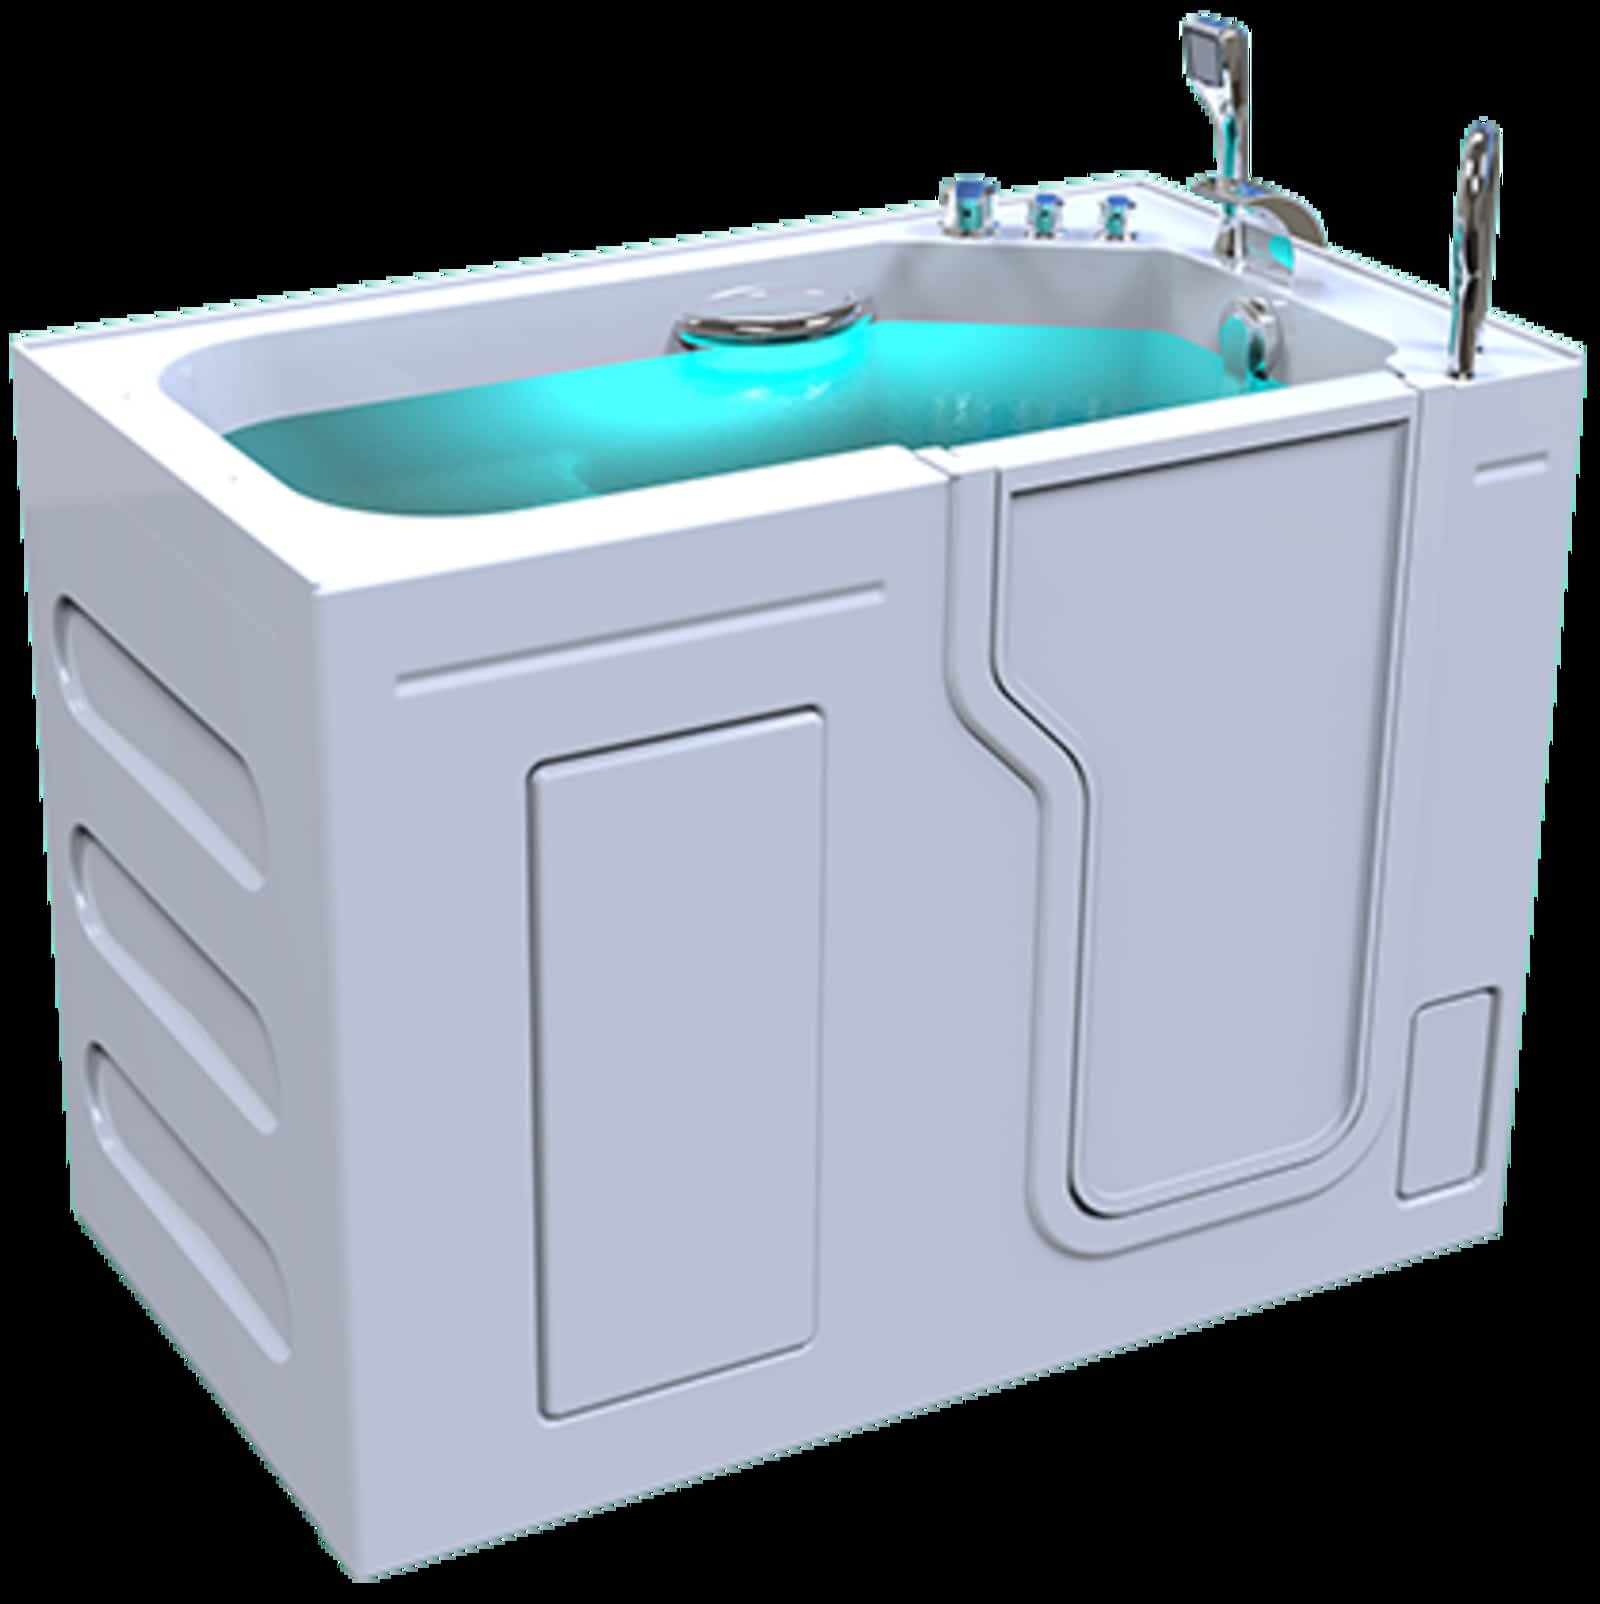 Safety Bath Walk-in Tubs - Opening Hours - 1280 2 Ave S, Lethbridge, AB